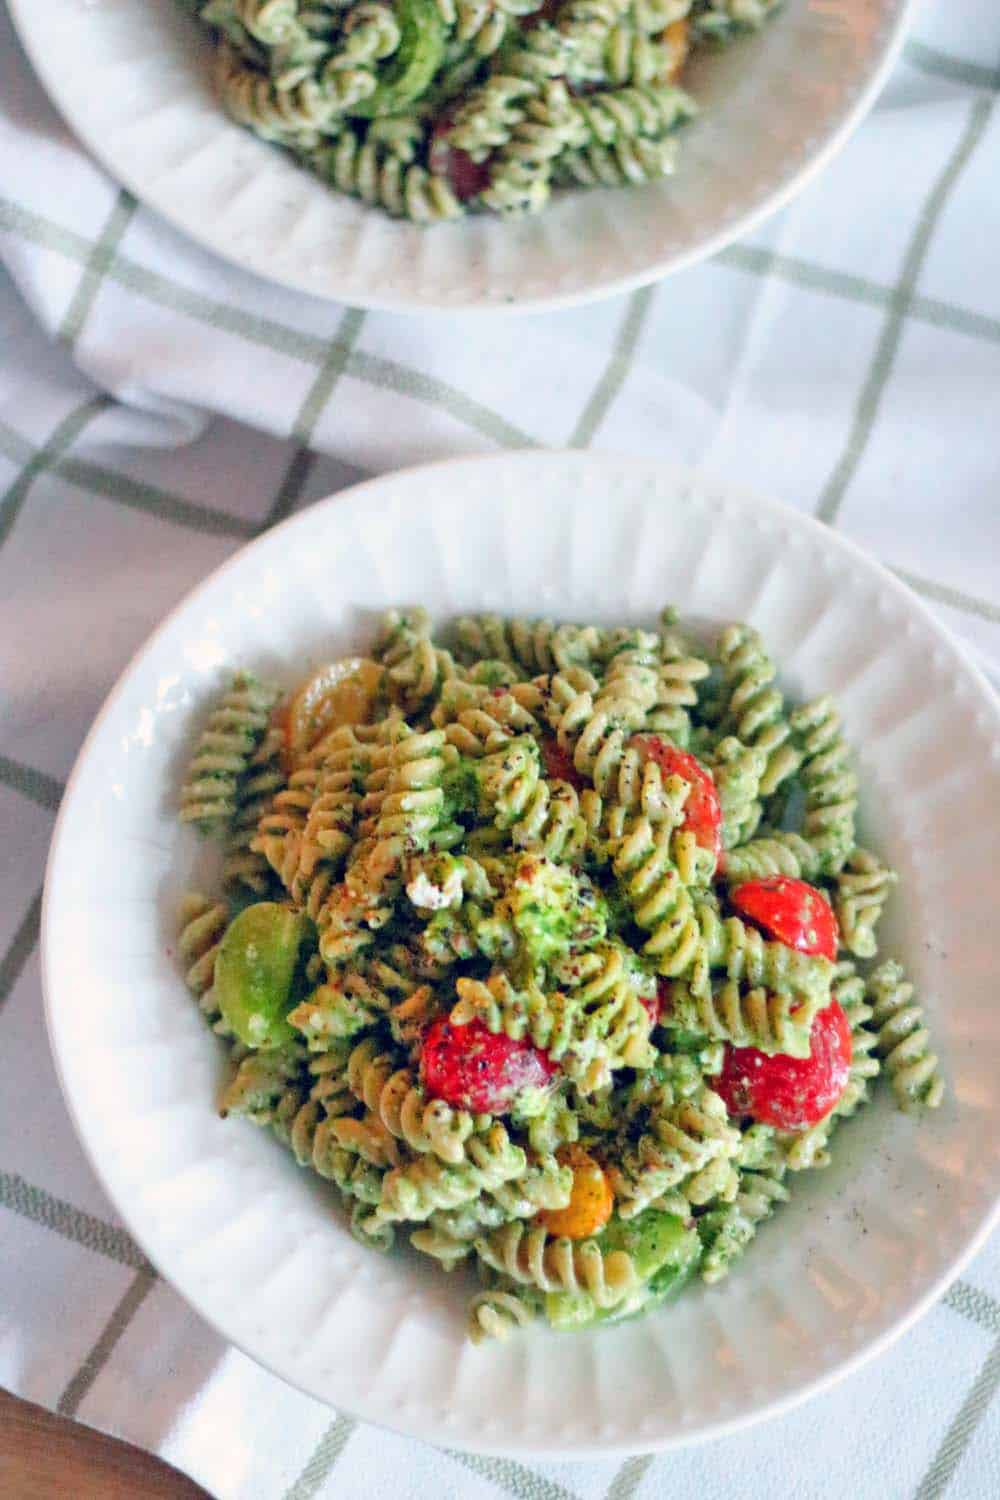 Four Ingredient Pesto Pasta Salad All You Need To Make This Healthy Light